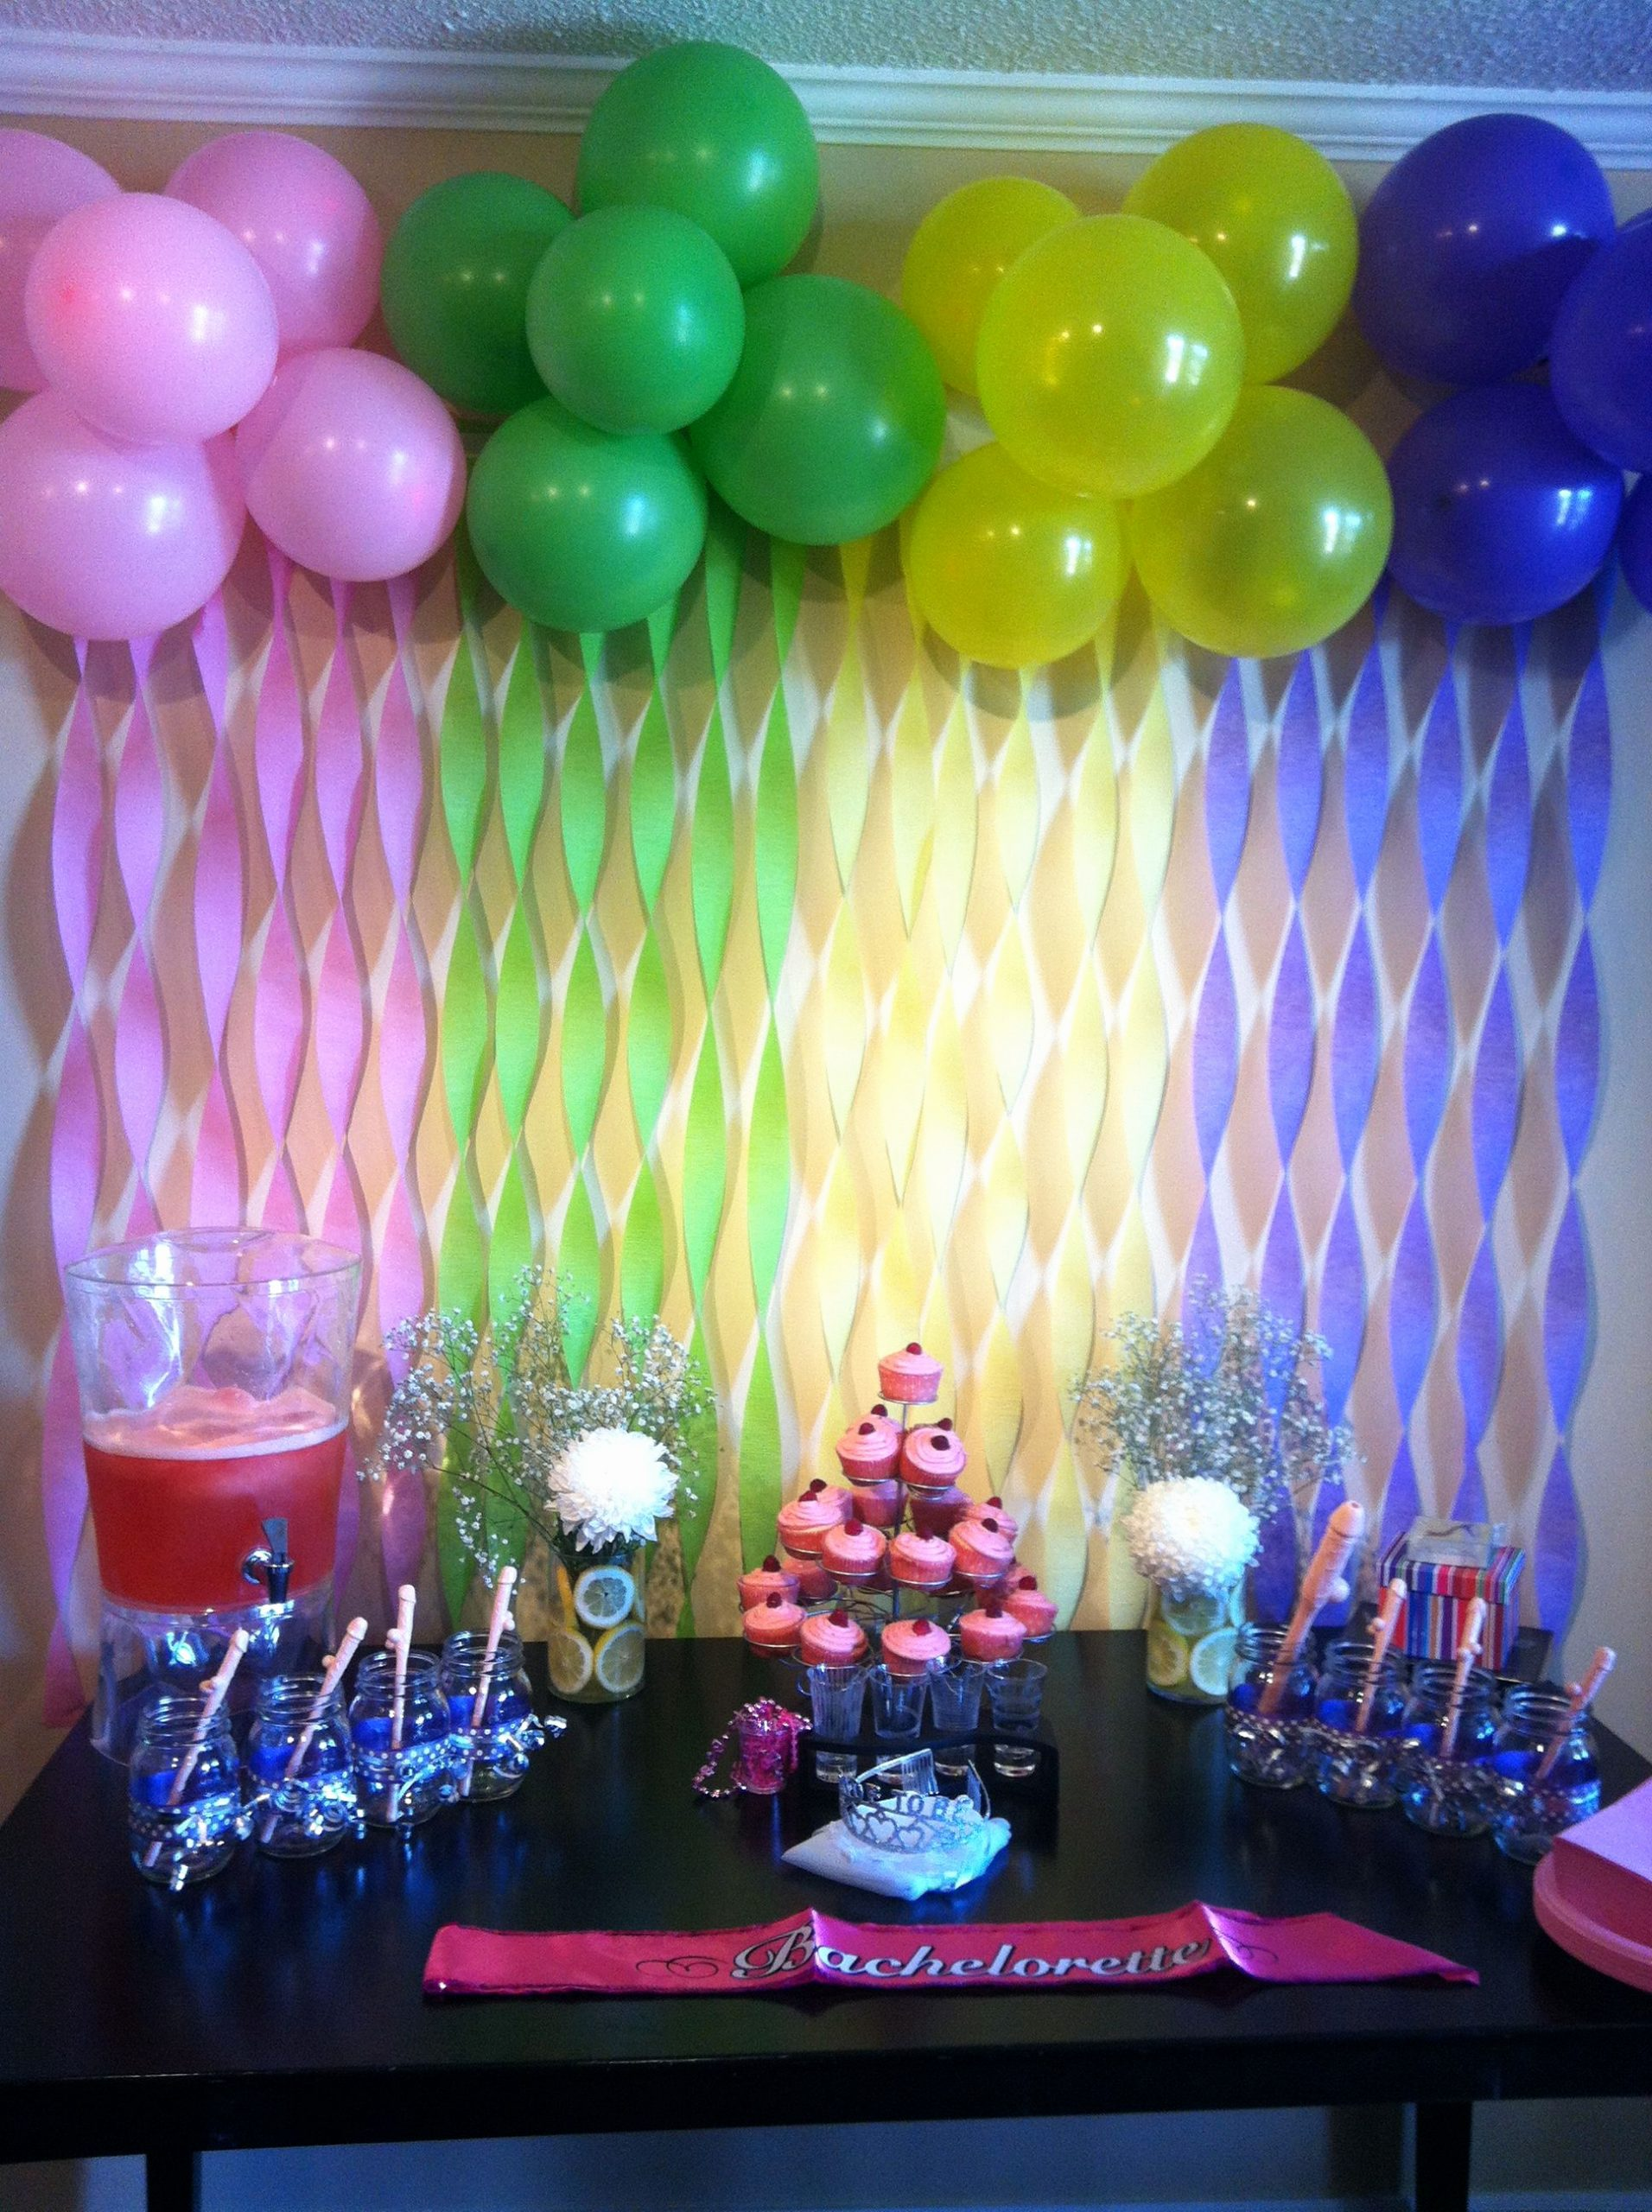 Girlfriend Birthday Decoration Ideas Luxury 9 Best Easy Birthday Decoration Ideas Images On Home Decor Ideas